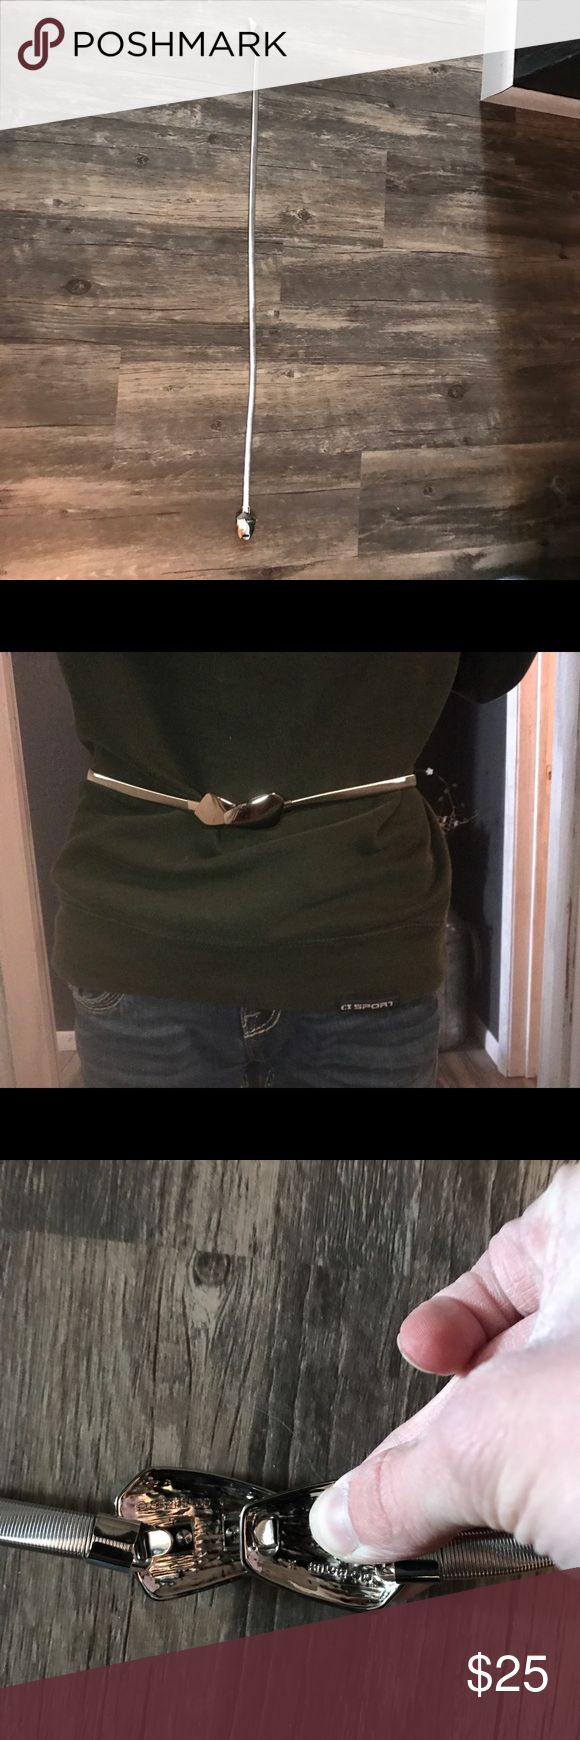 Steve Madden Silver Cobra Stretch Belt A silver belt from Steve Madden. It clasps in the front together. I originally intended it to be a waist belt for dresses but it was too large for me. Very good quality and heavy belt. It is a small/medium size. Steve Madden Accessories Belts